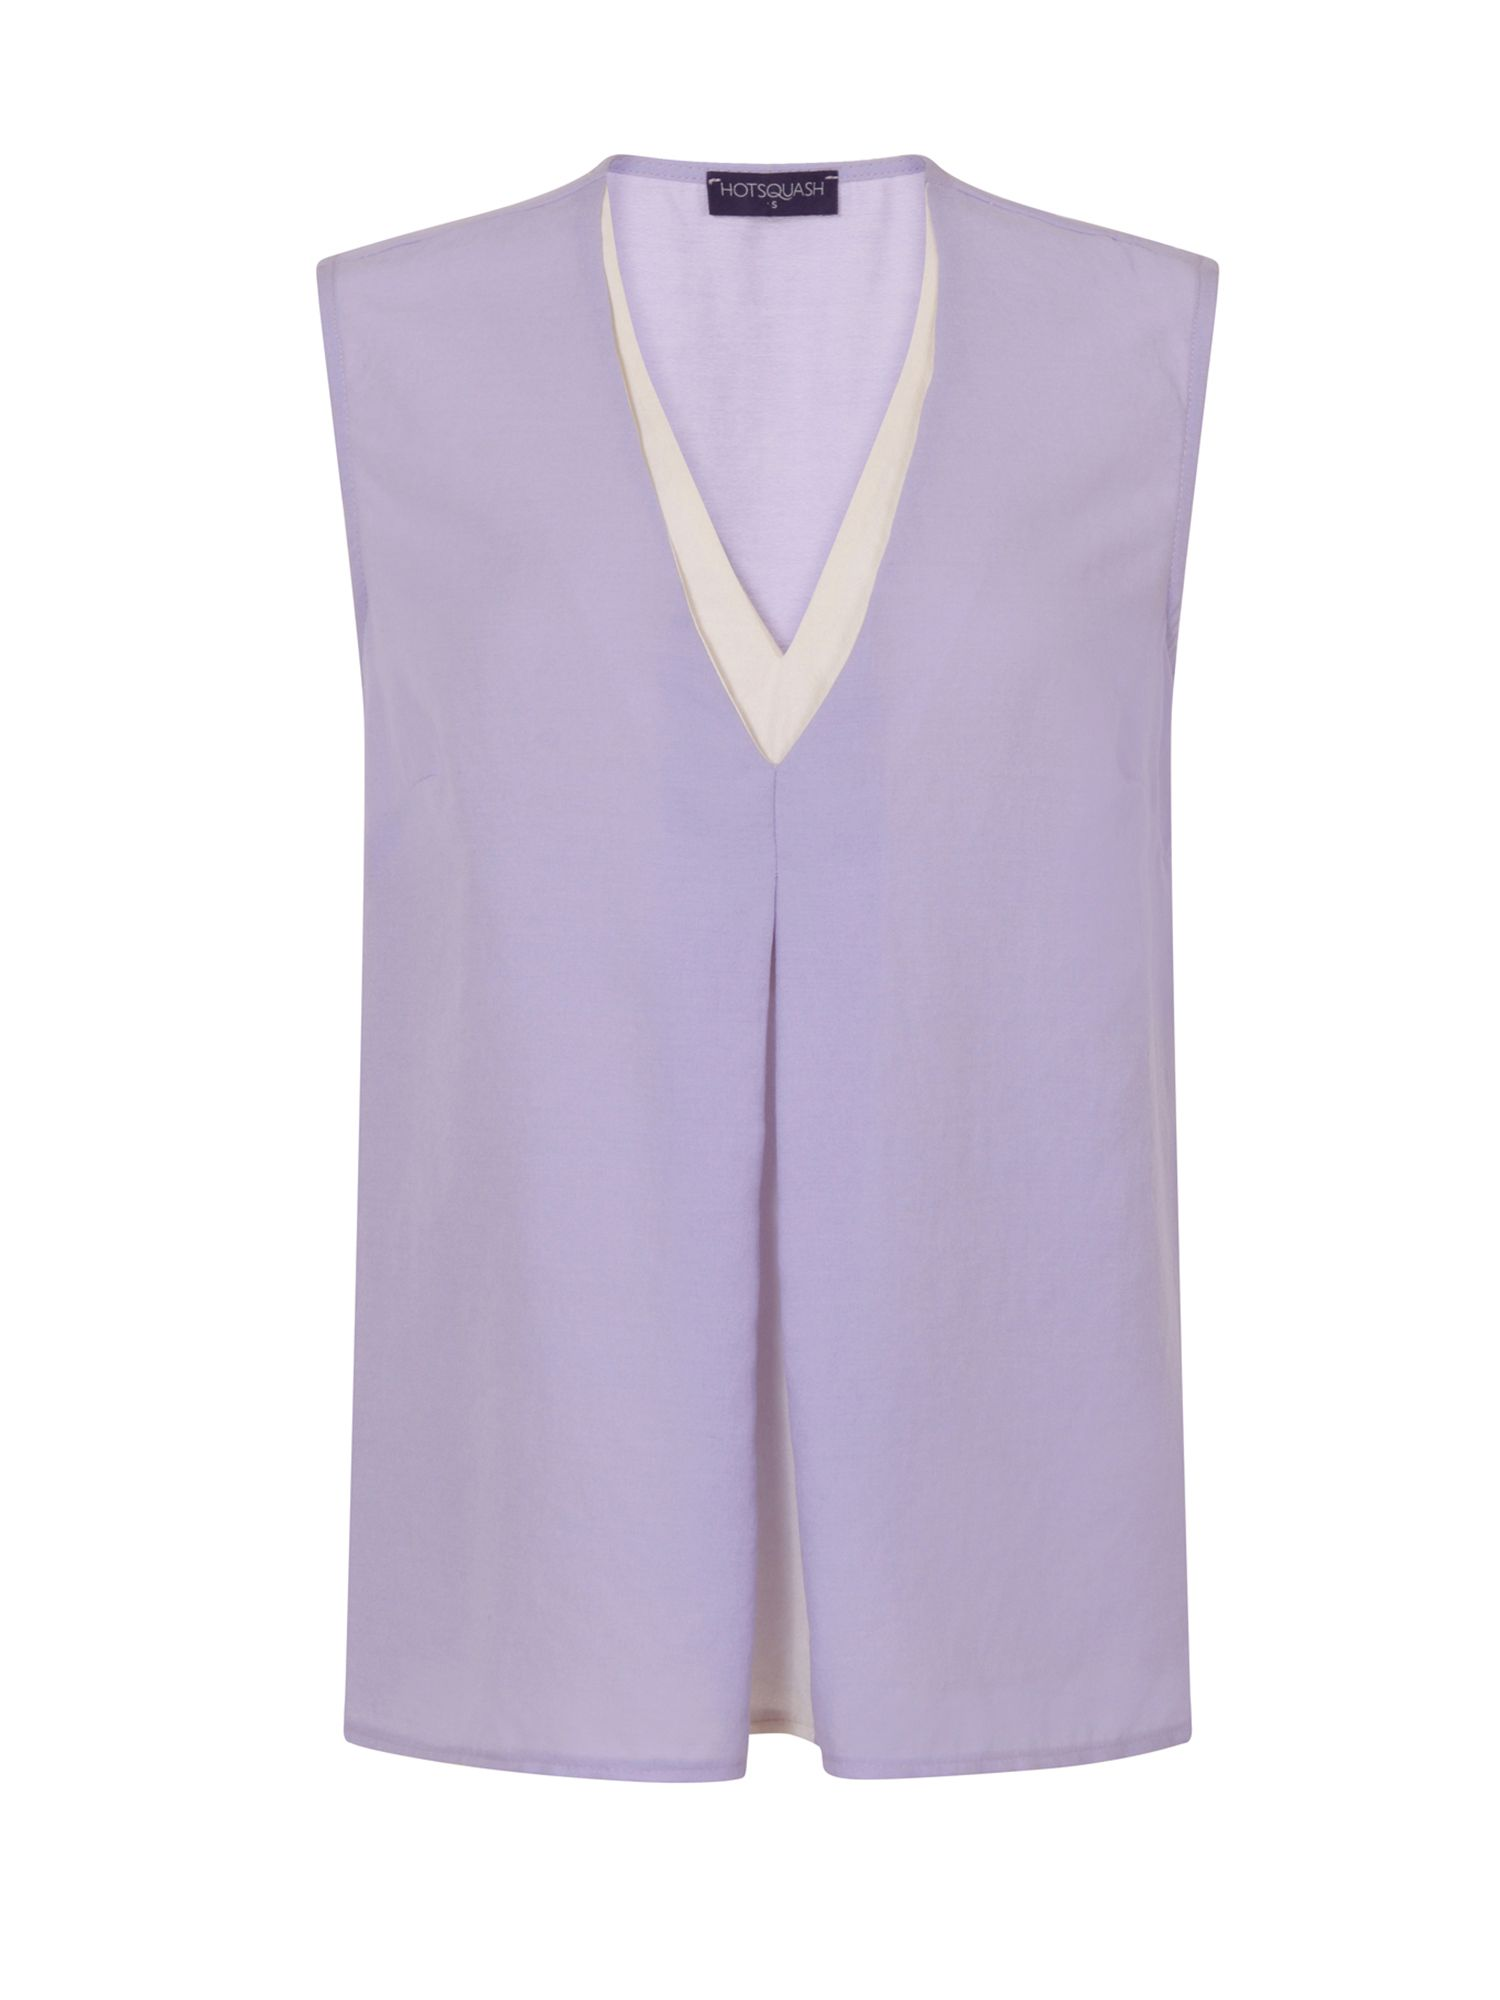 HotSquash V Neck Crepe Top in CoolFresh Fabric, Lilac